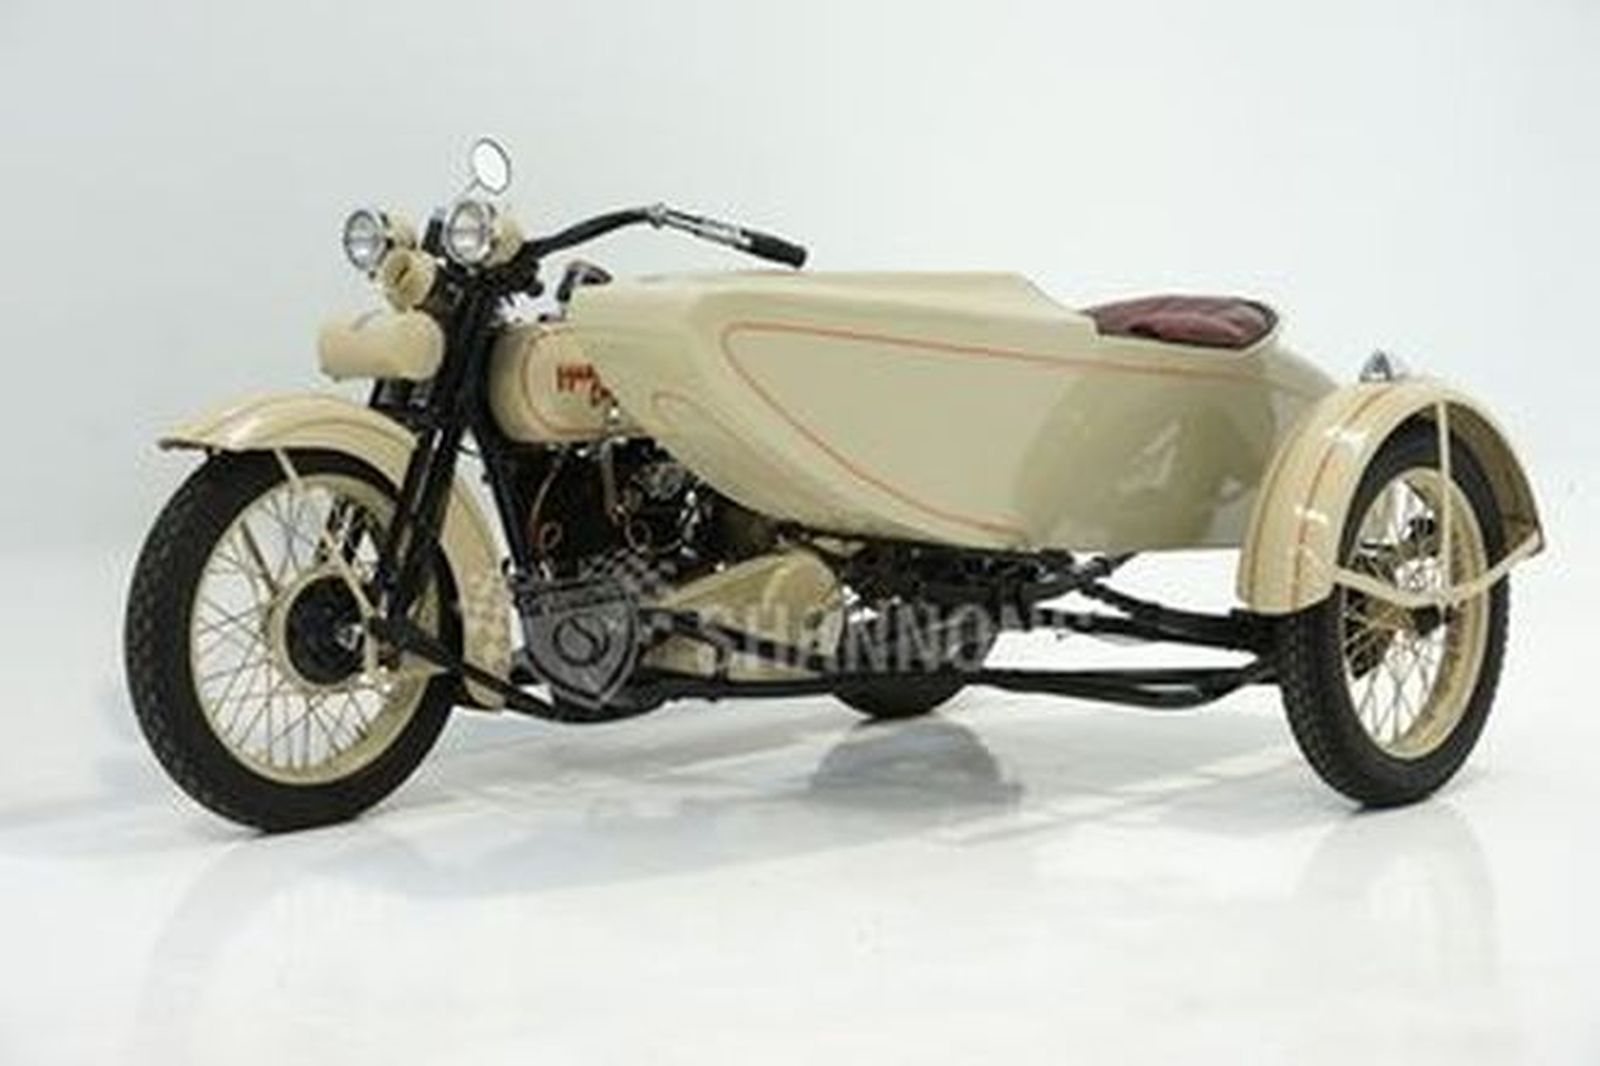 Harley-Davidson 'J Model' 1000cc Motorcycle with Sidecar